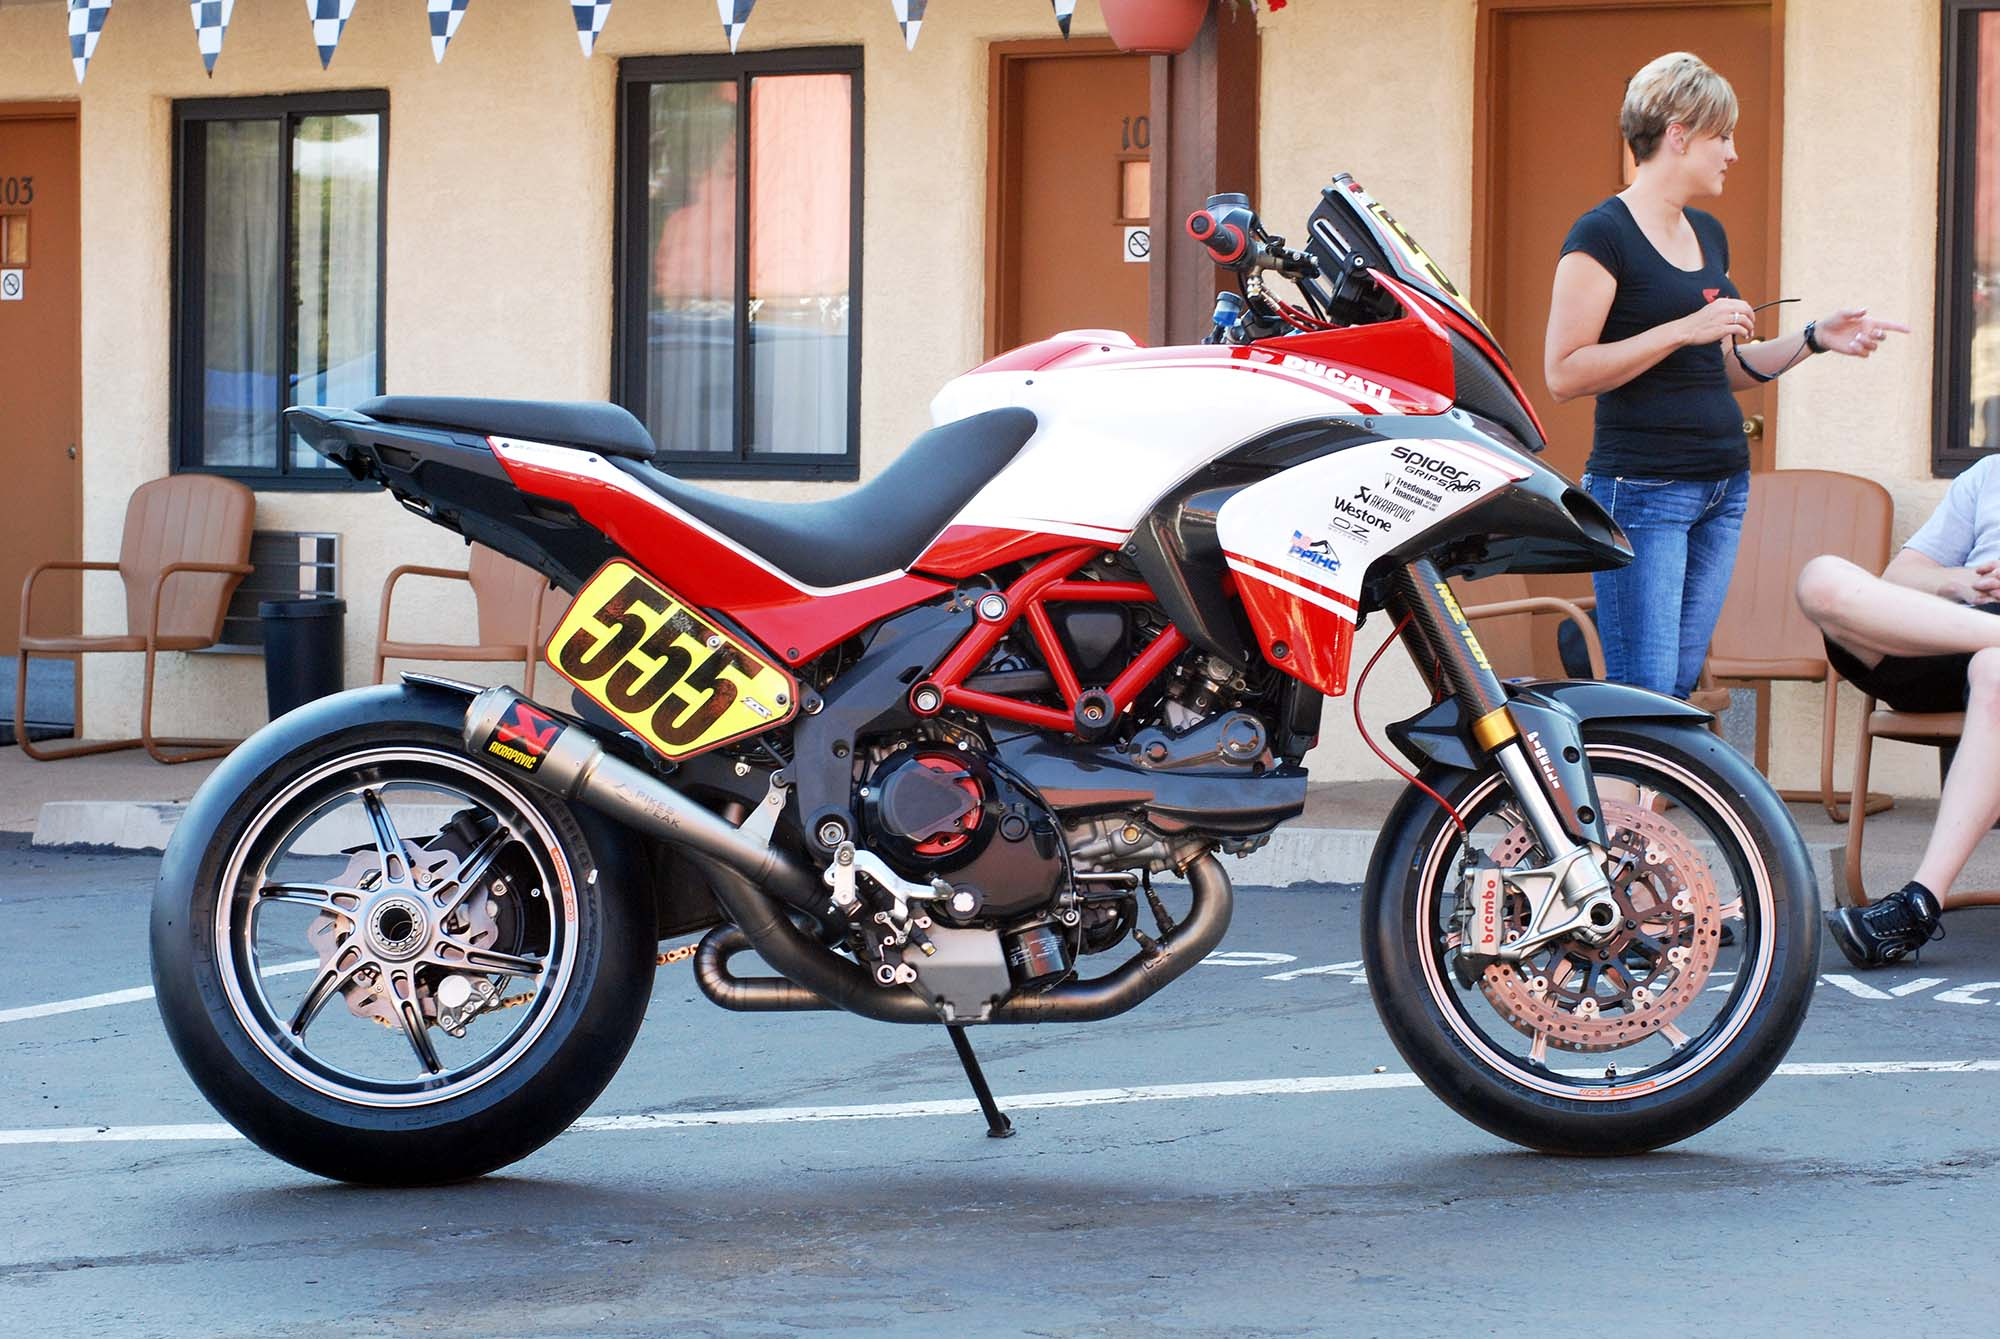 Ducati Multistrada 1200 S Pikes Peak Edition images #80013